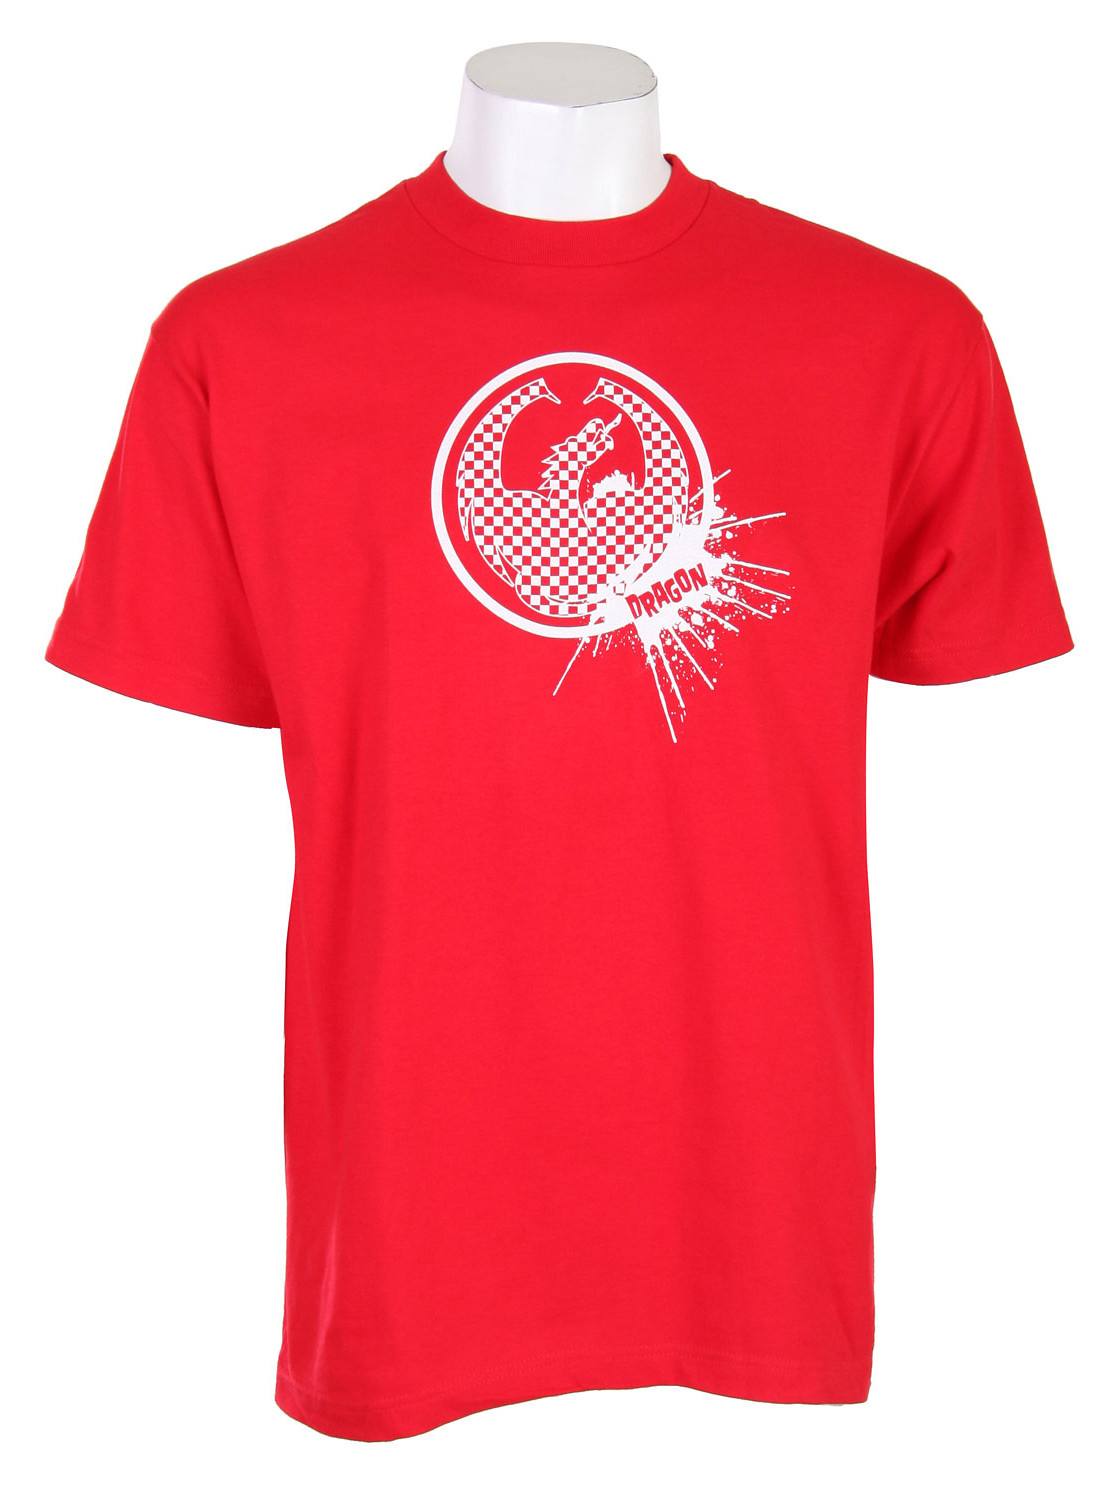 Dragon Skanicon T-Shirt Red  dragon-skanicon-t-red-08.jpg